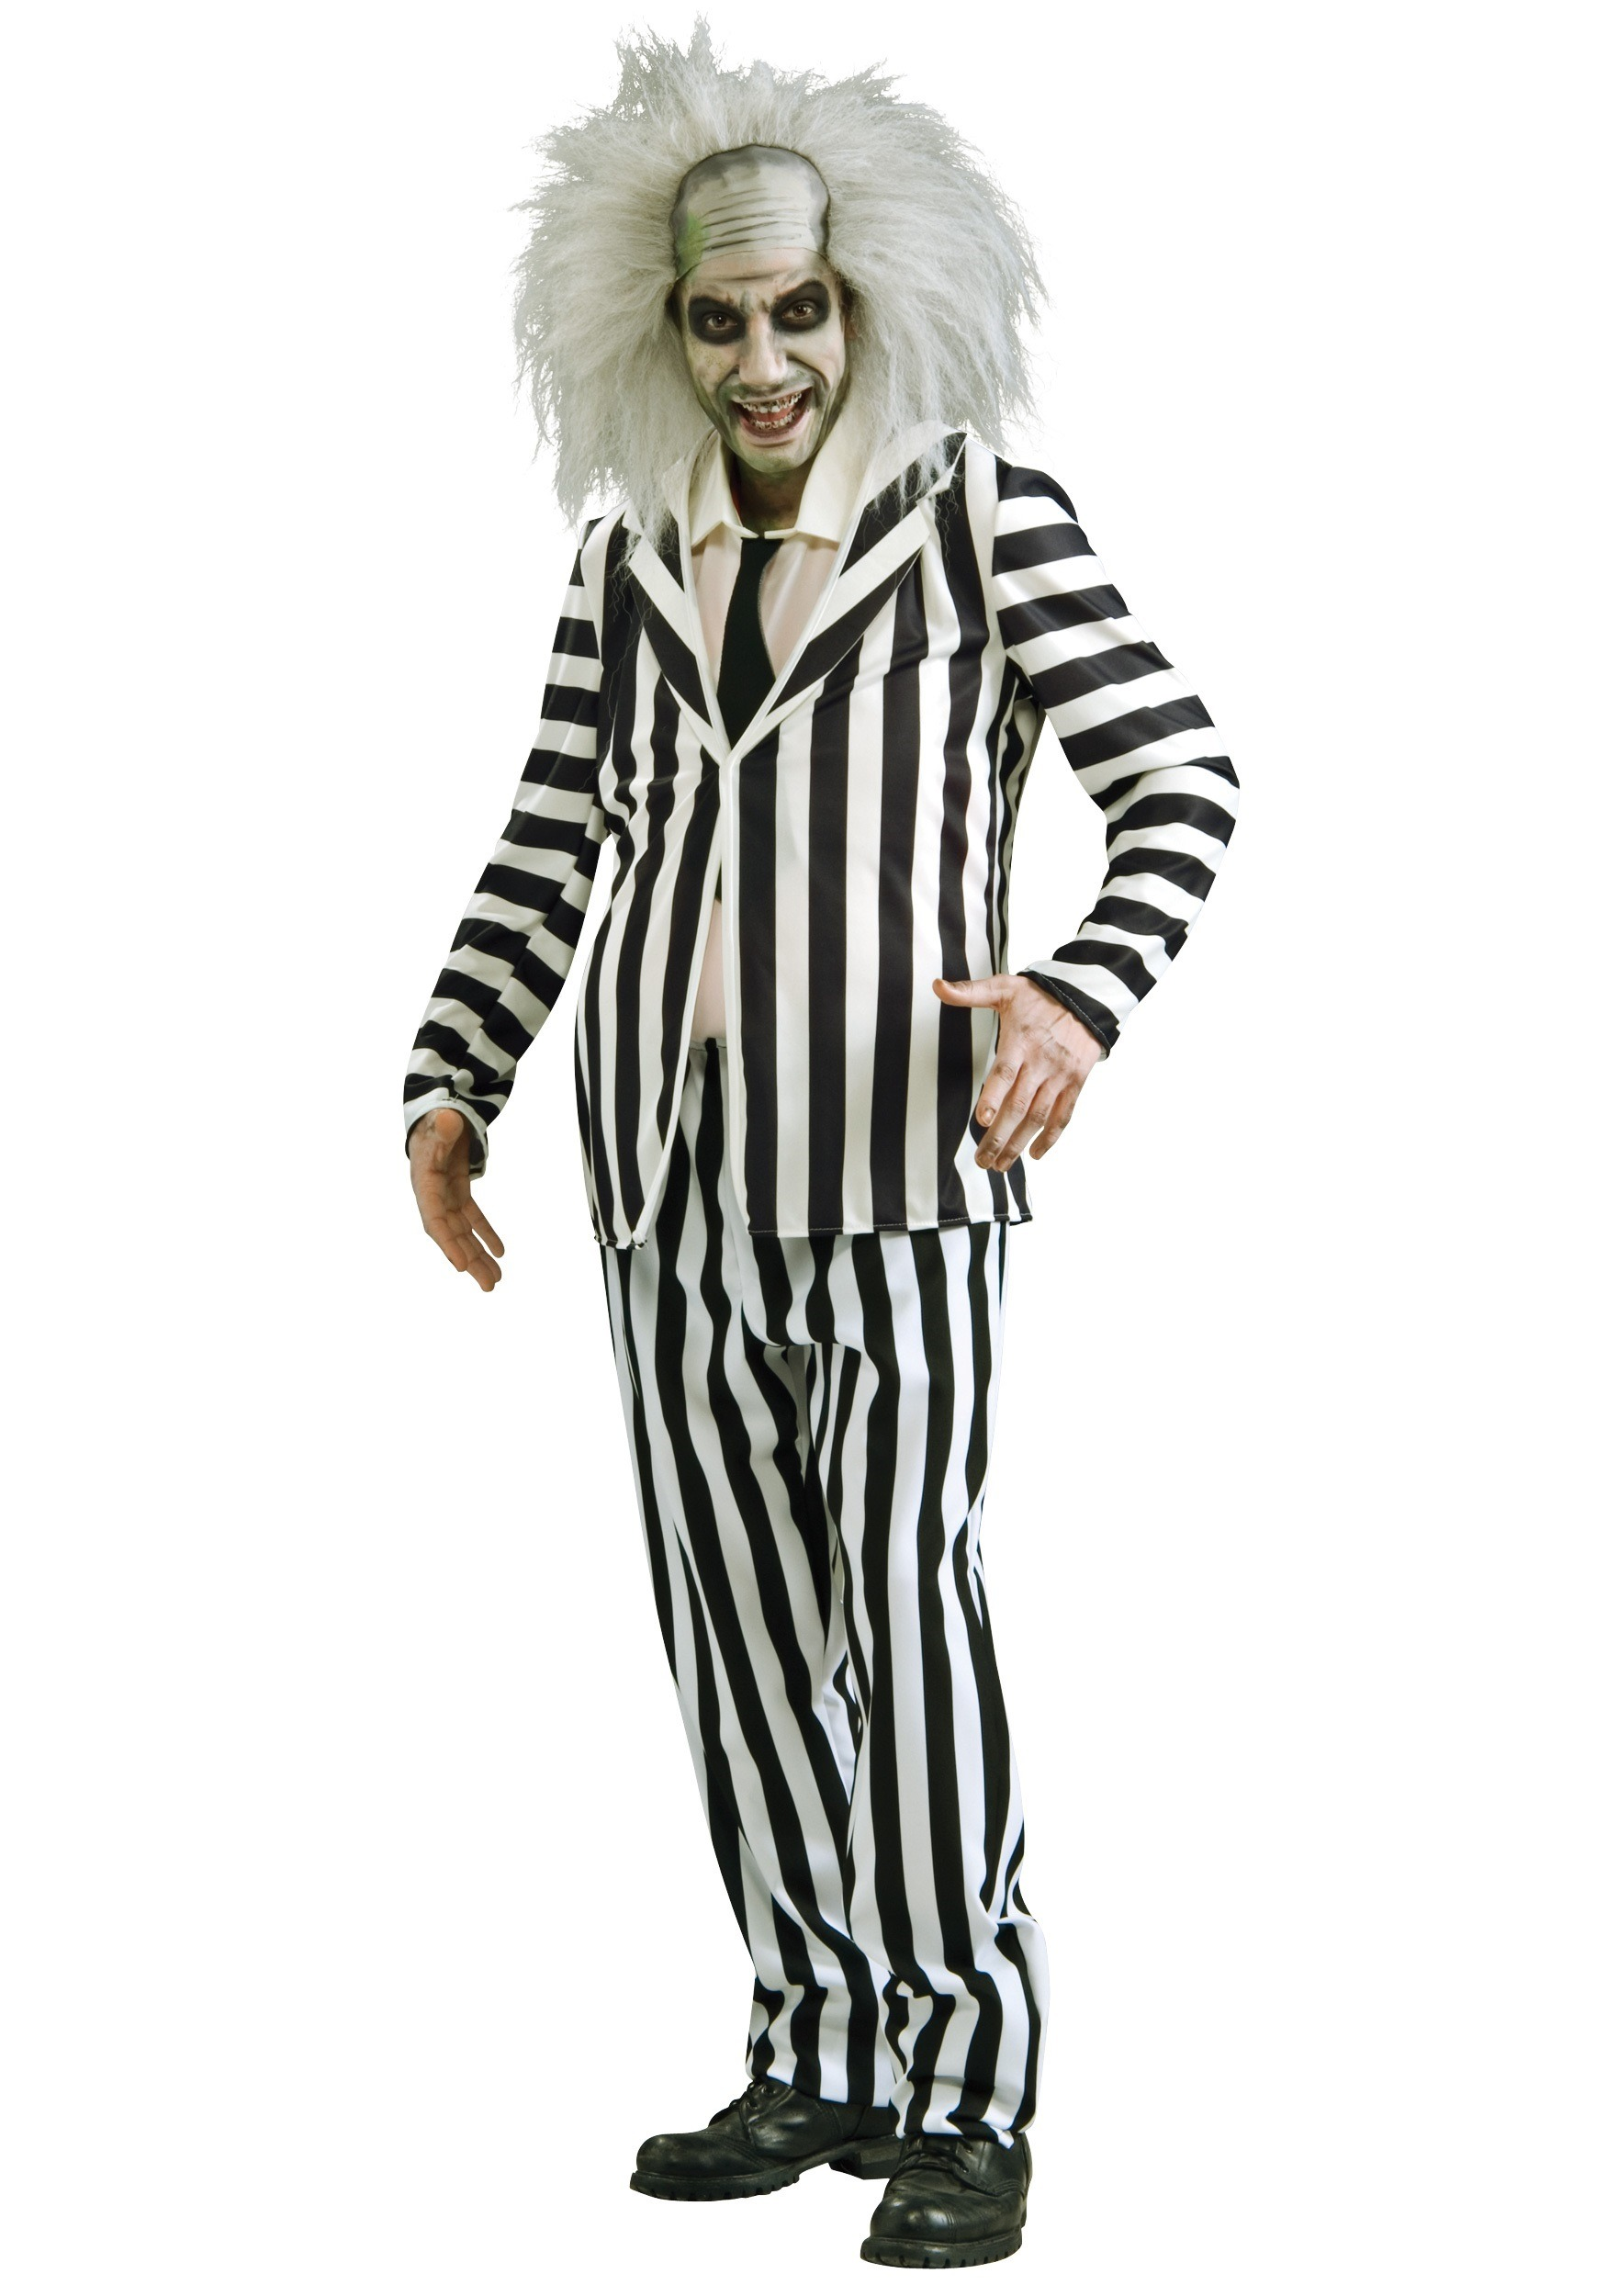 Plus Size Beetlejuice Costume 2x Black And White Stripped Suit